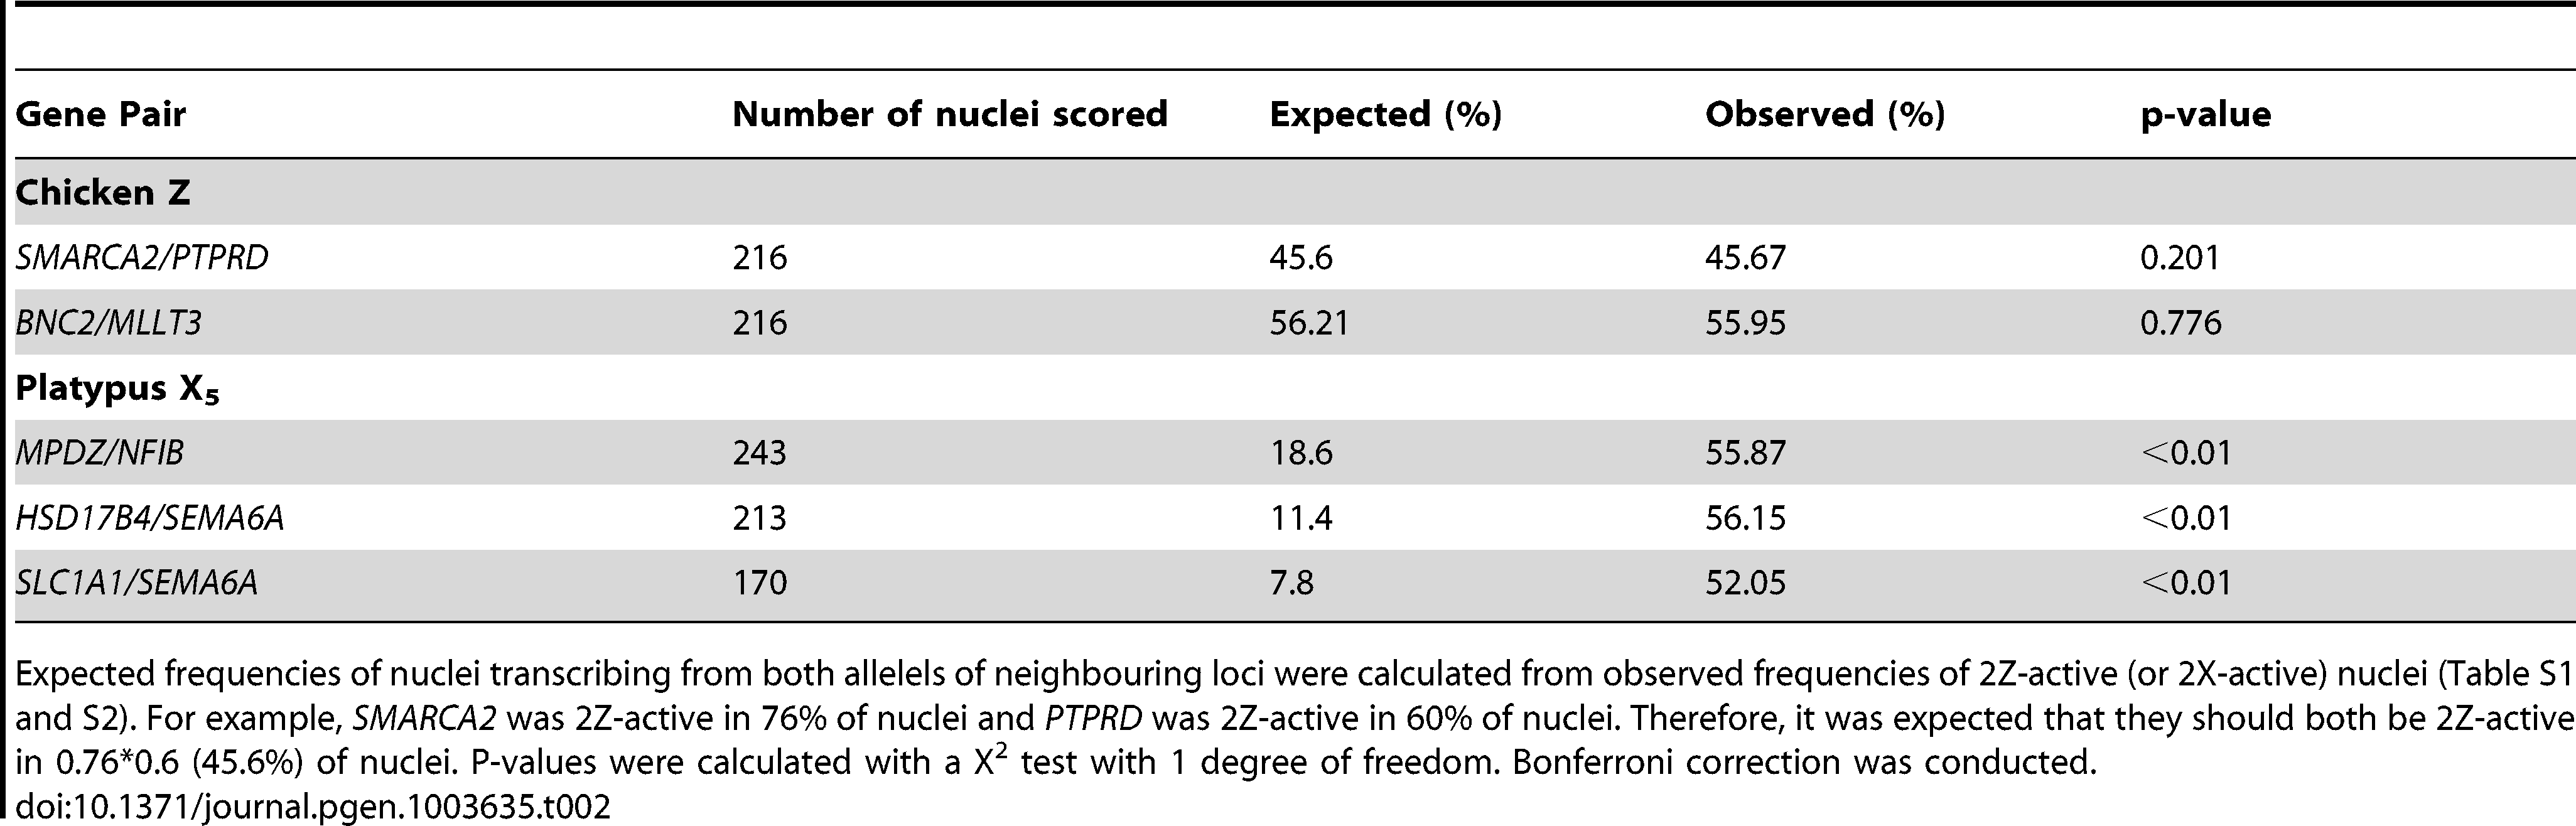 Frequency of nuclei transcribing both alleles of neighbouring loci.